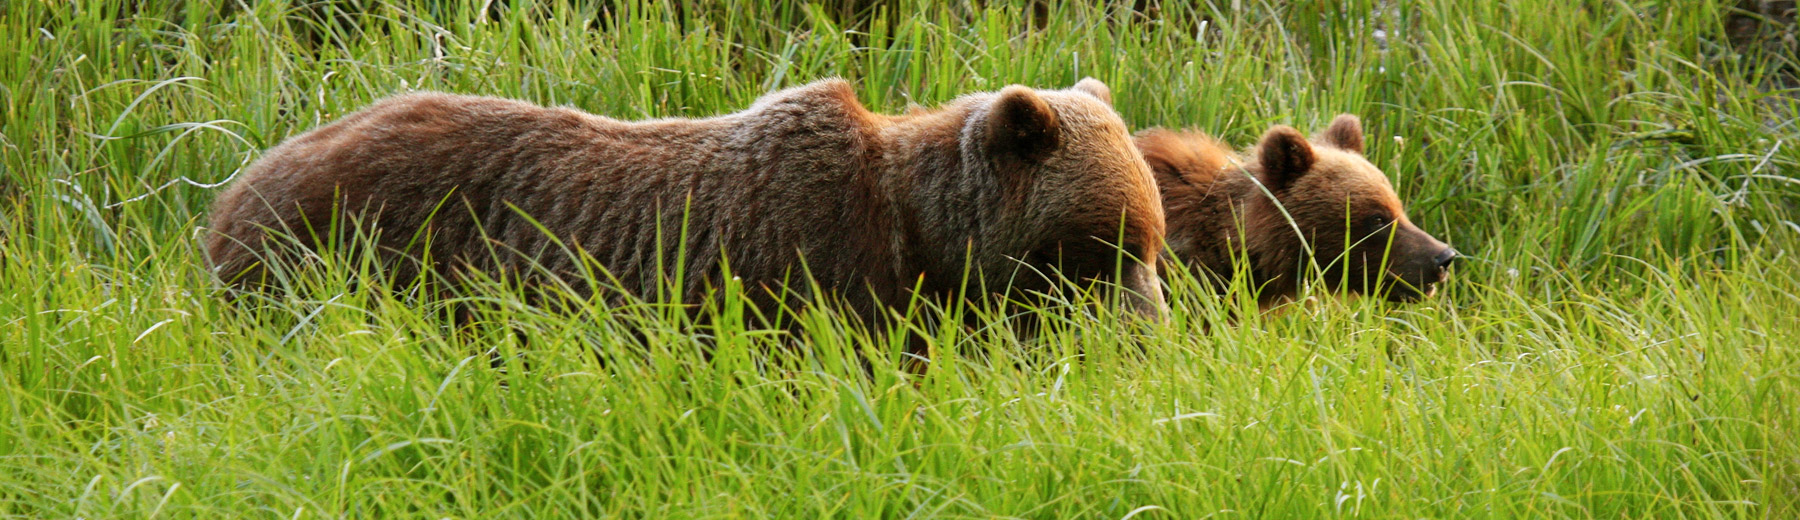 Grizzlies in tall grass, BC